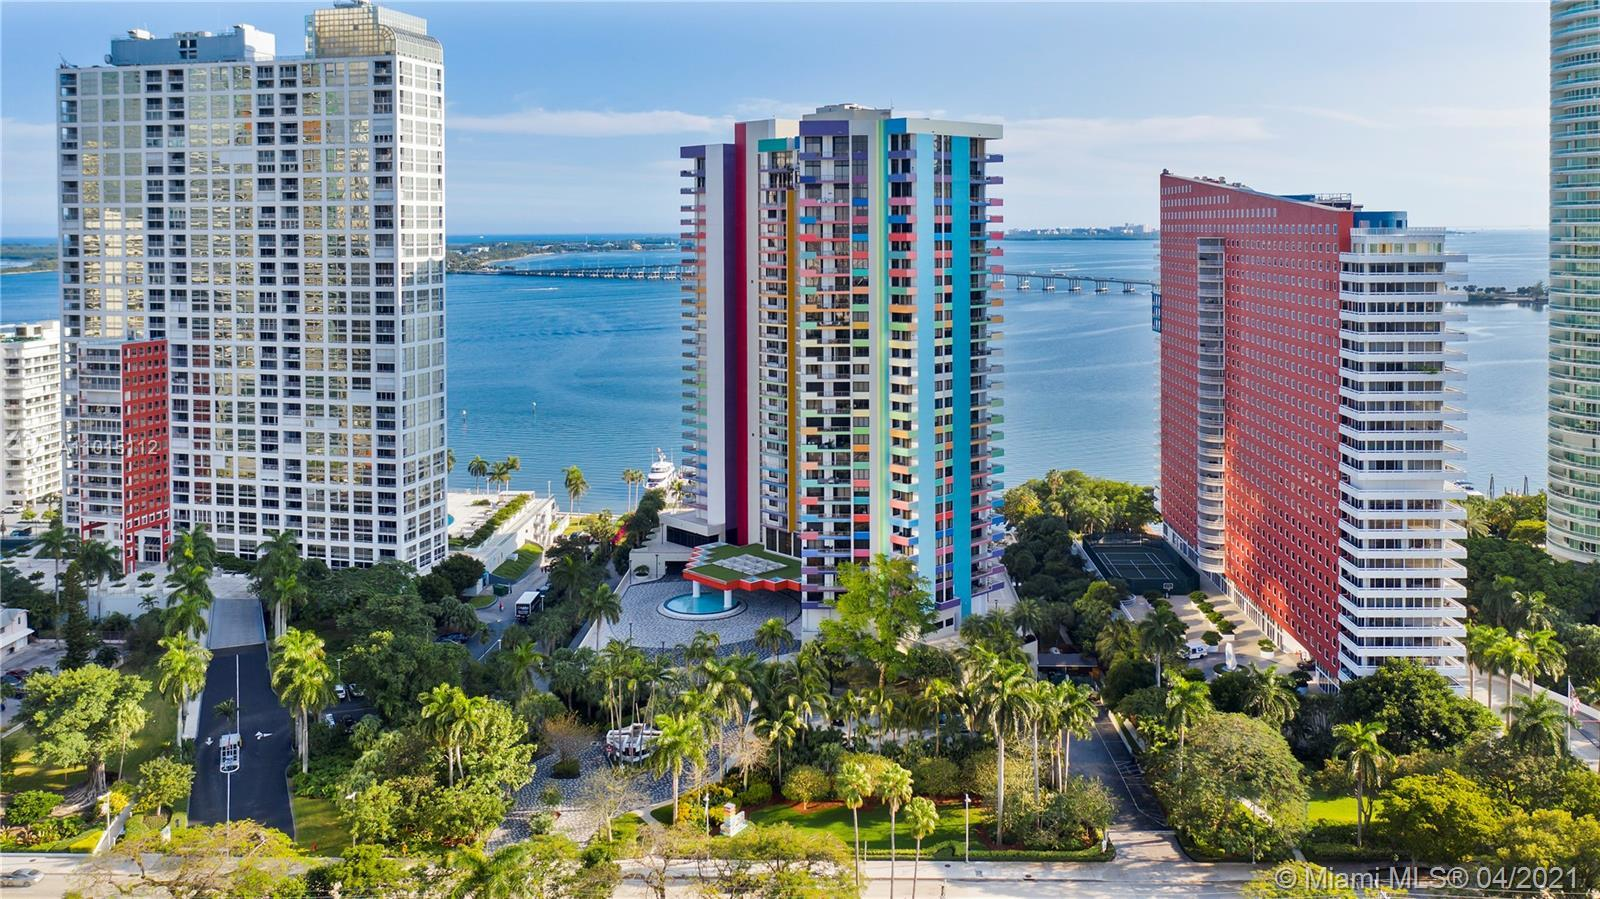 Price reduction! Now priced to sell.  This apartment is HUGE, with 2,403 sq feet of living space it'